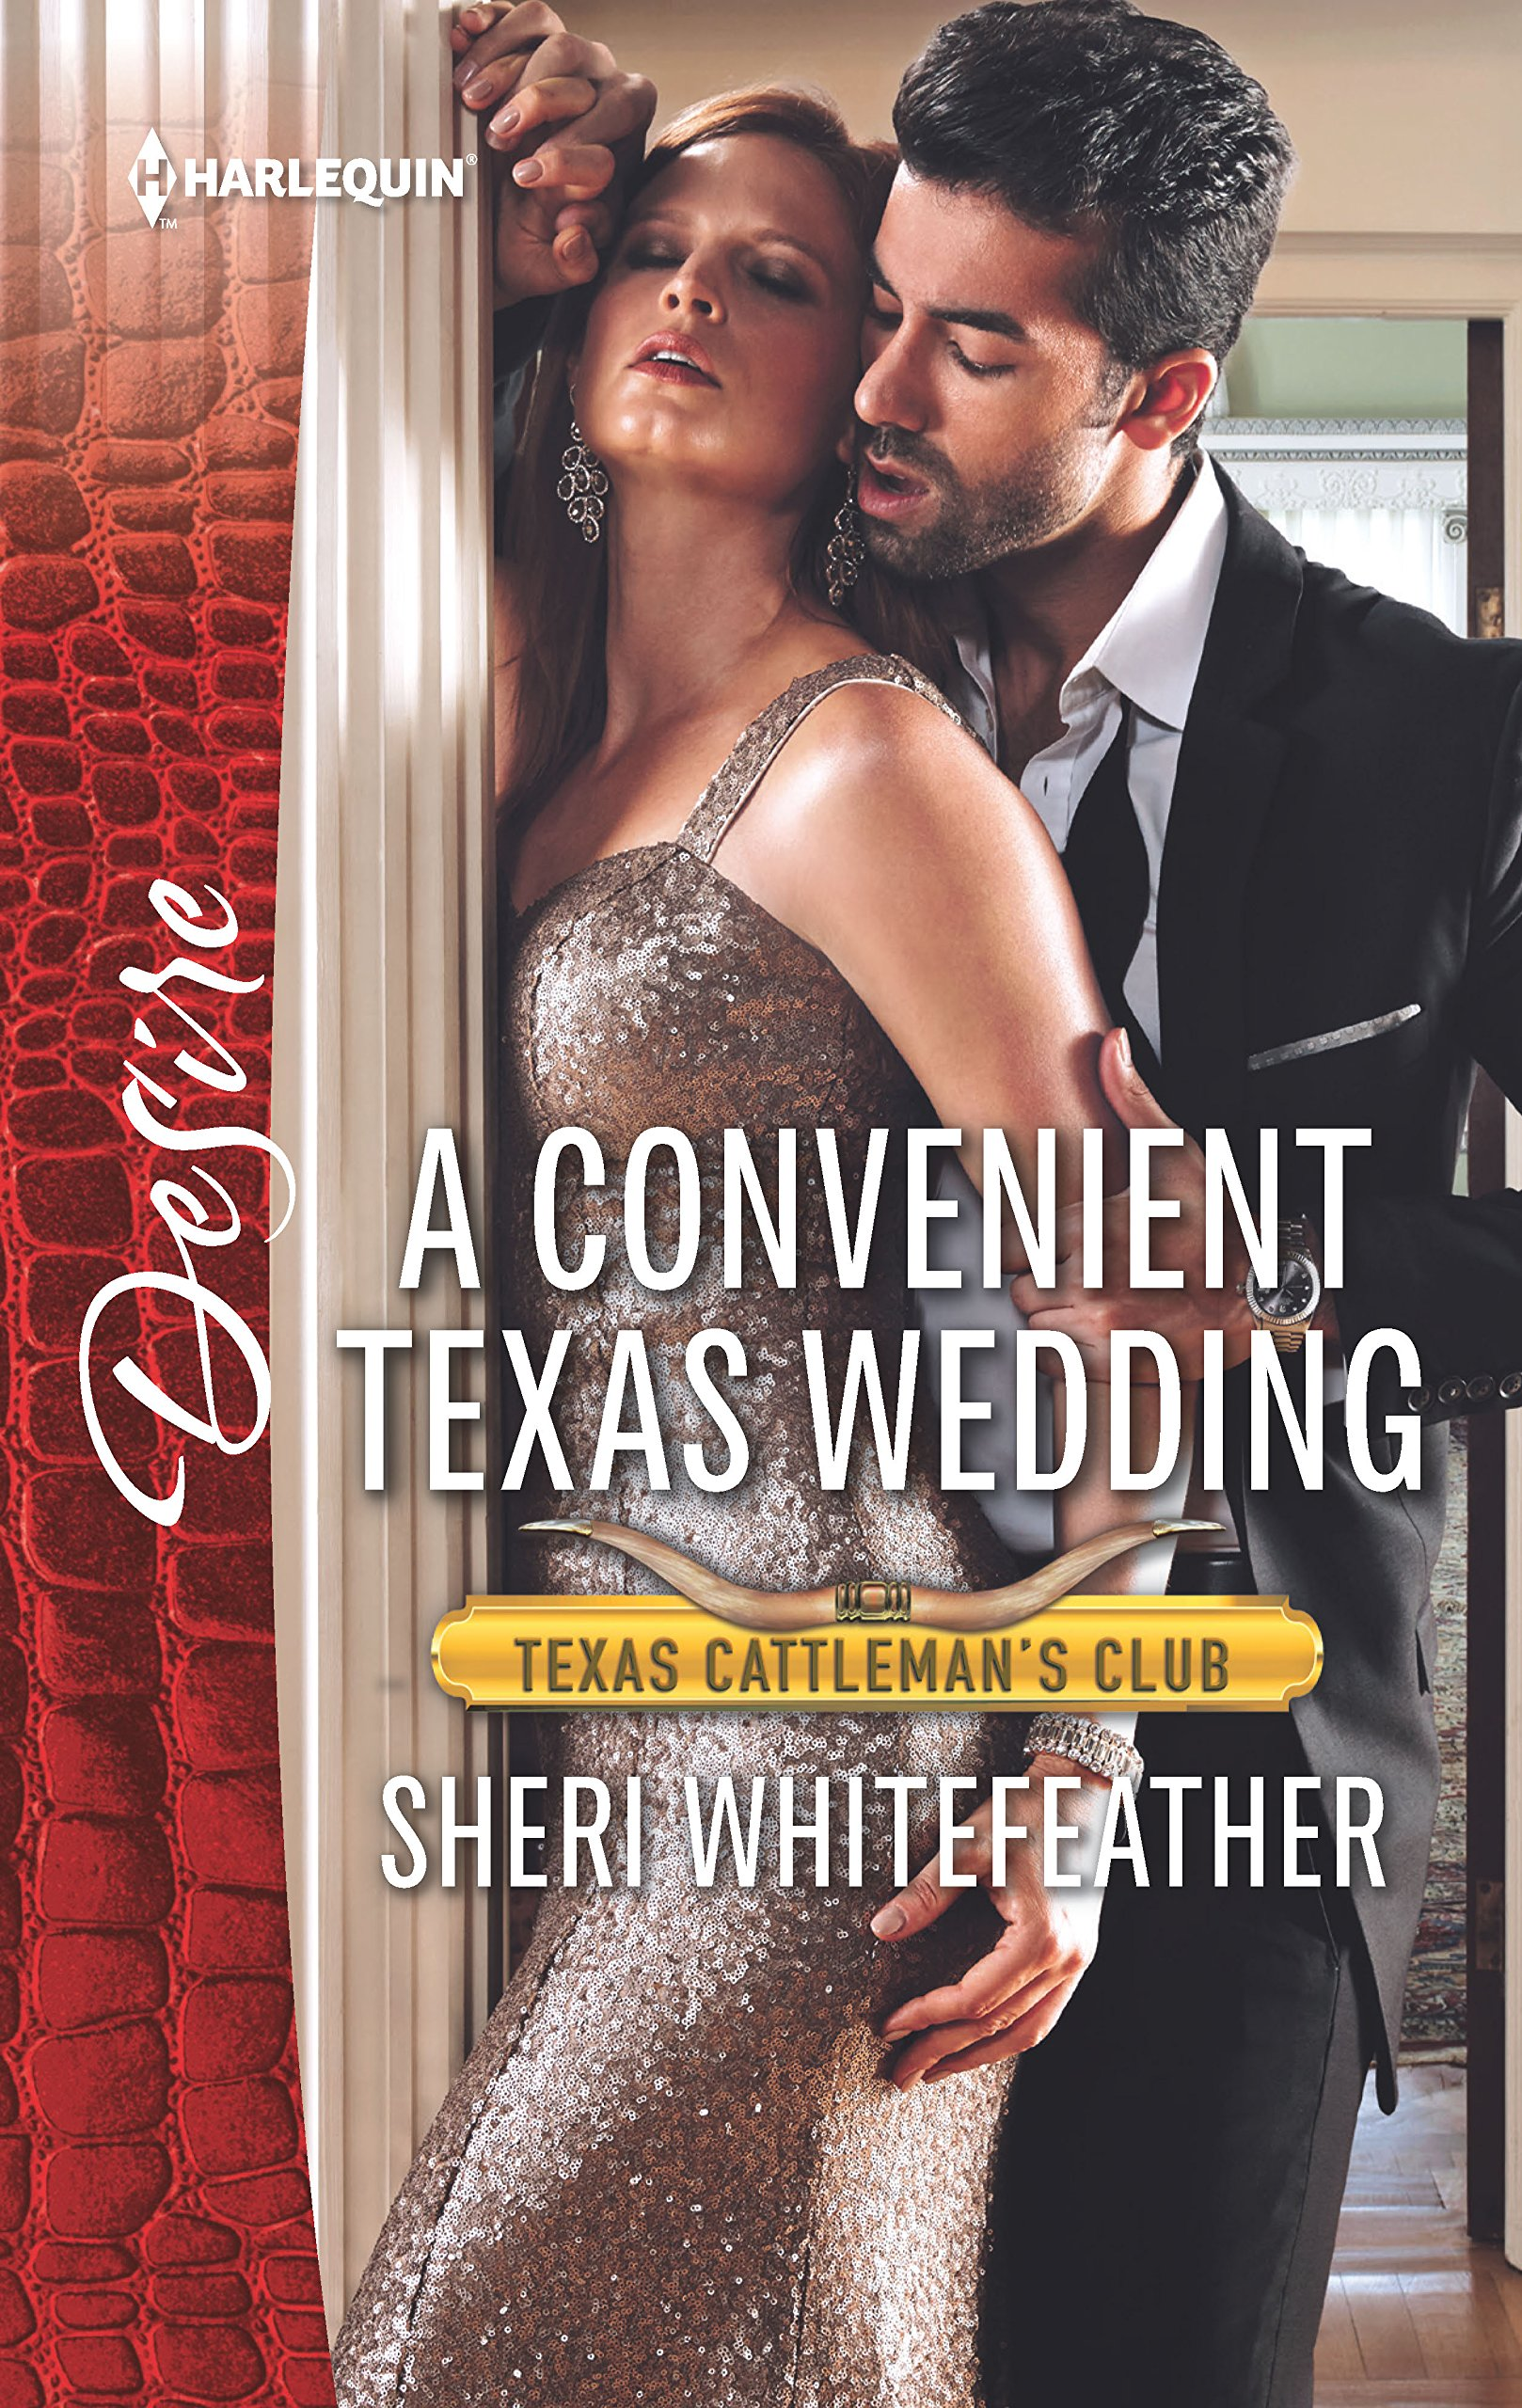 Download A Convenient Texas Wedding (Texas Cattleman's Club: The Impostor) PDF